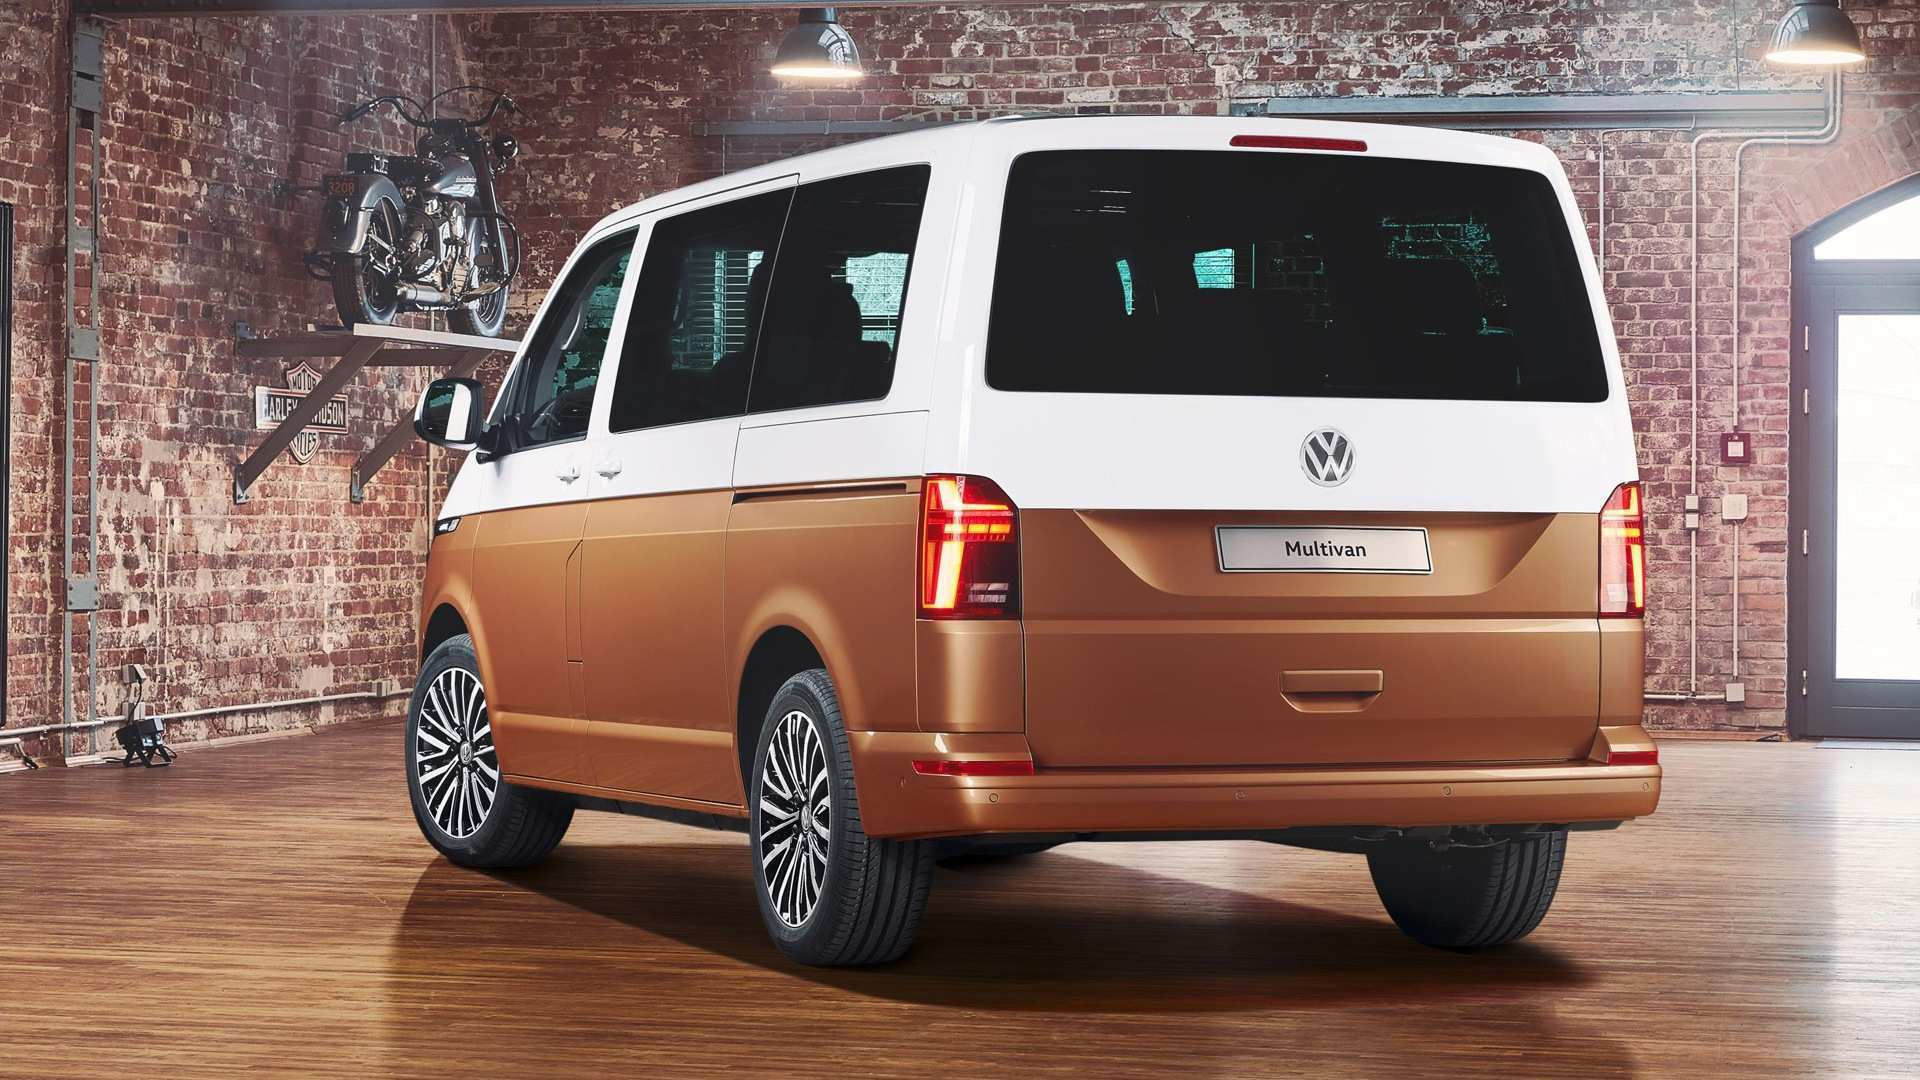 92 New 2020 VW Transporter Style with 2020 VW Transporter